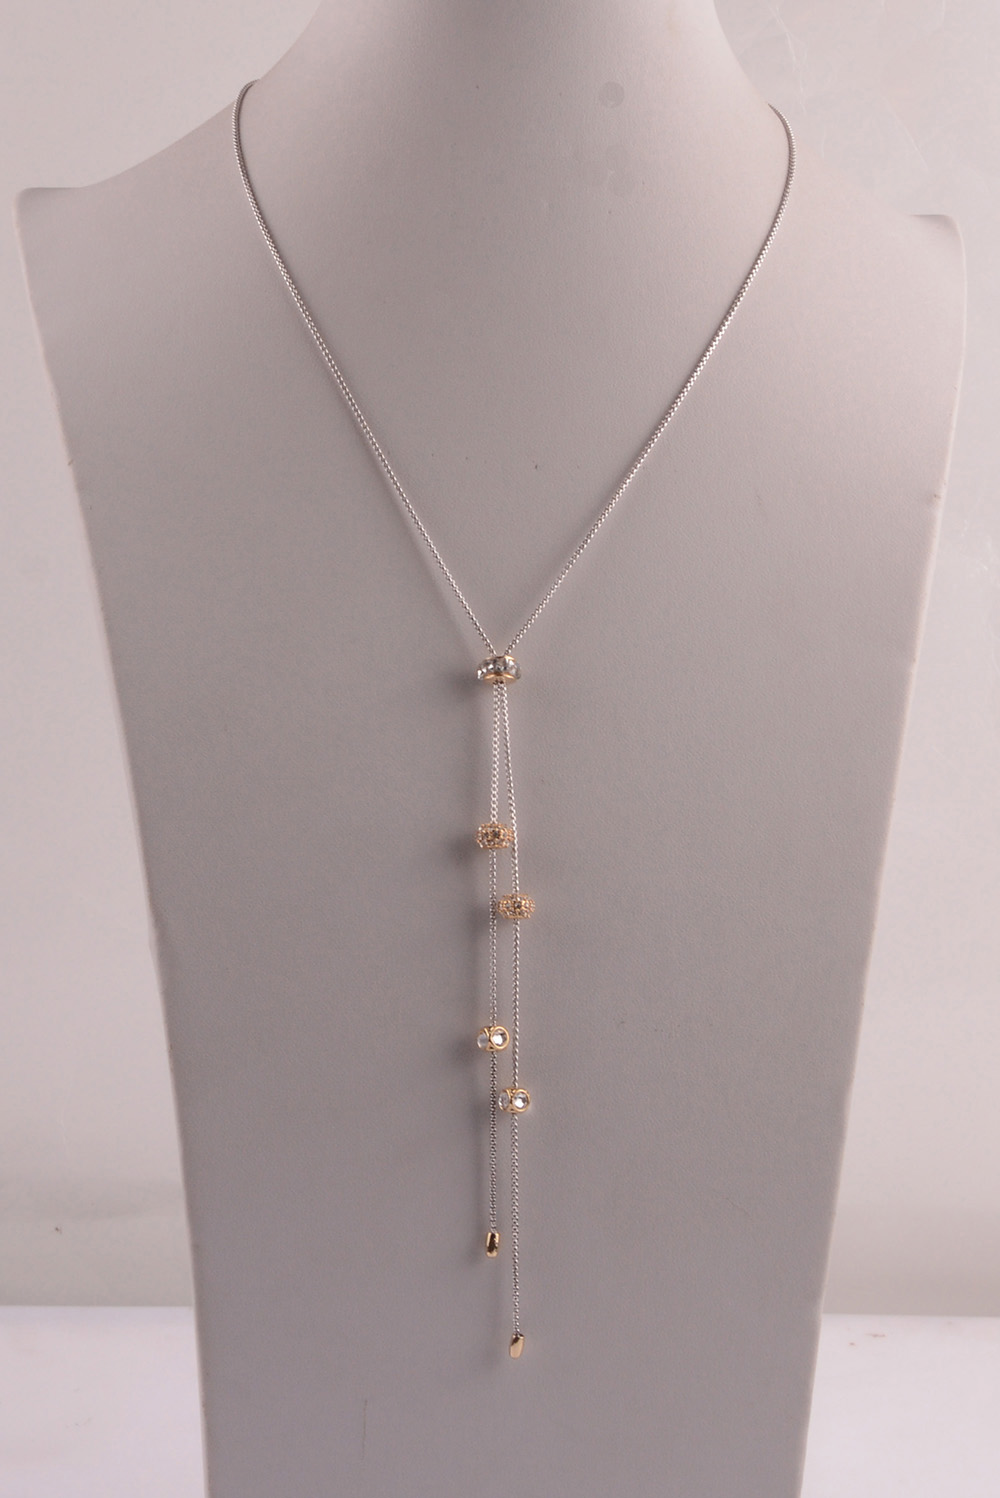 907537 Lady Long Necklace